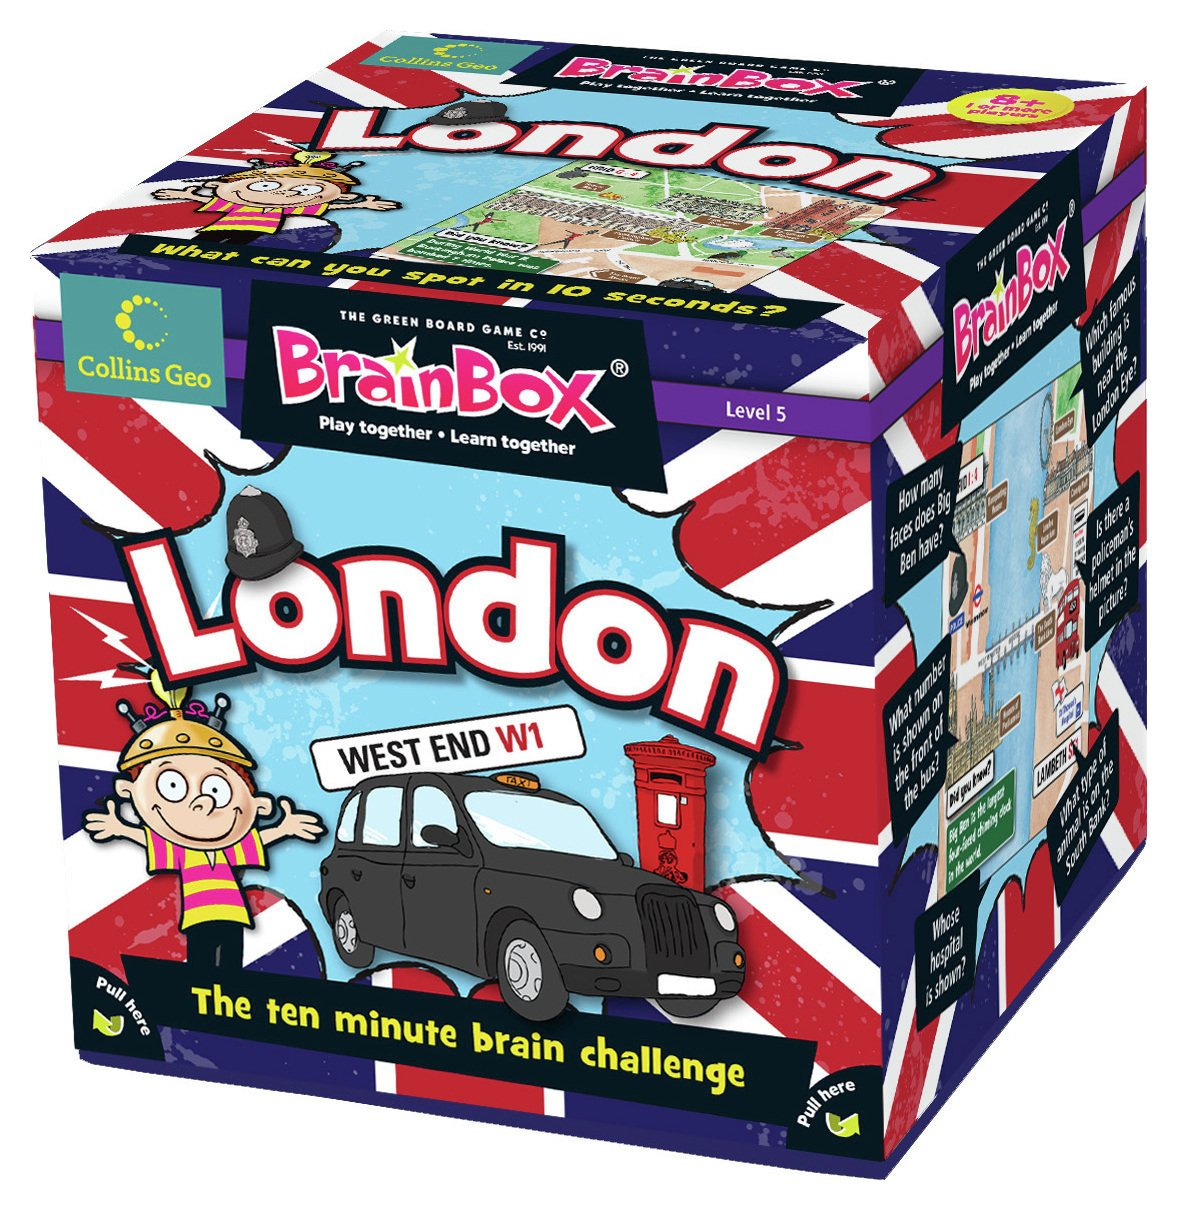 Image of Brainbox London Card Game.